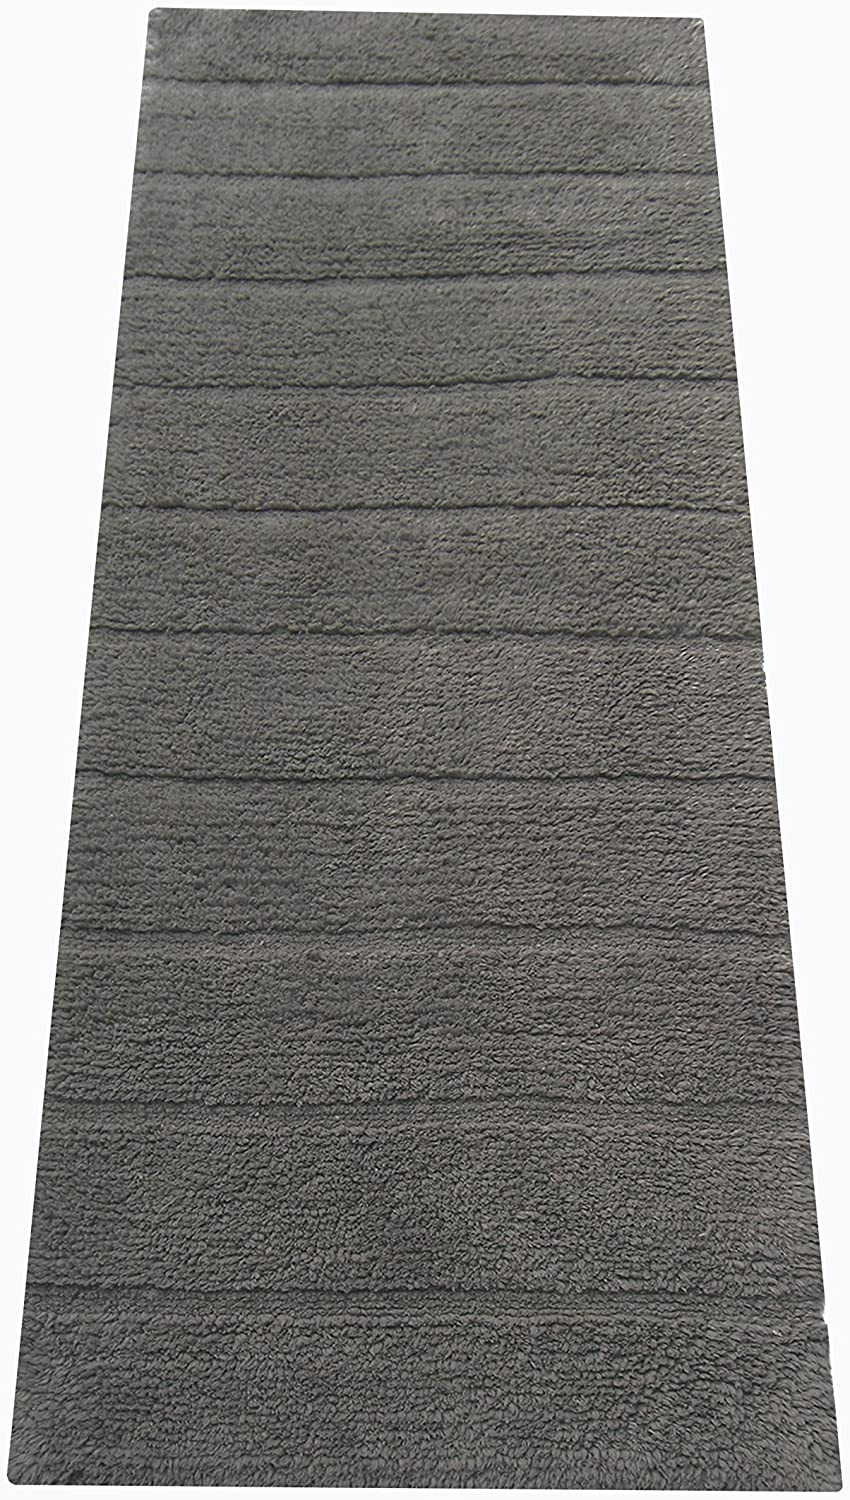 Chardin home New Cordural Solid Bath Runner with Latex Spray Non-Skid Backing, 24